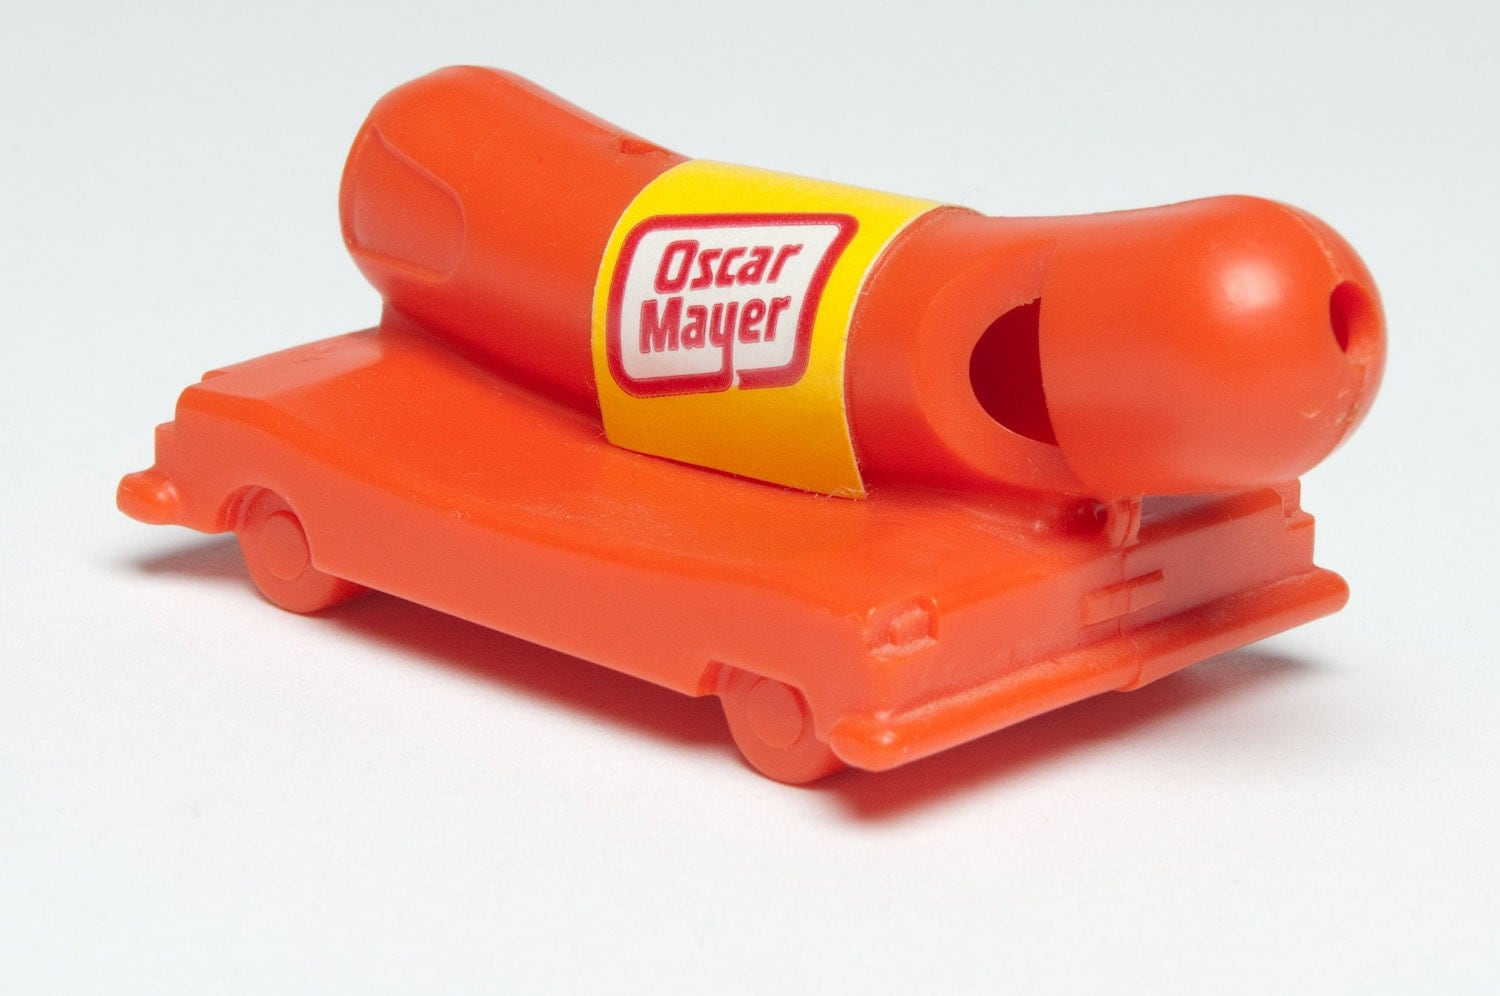 1402 besides Plastic Meat besides Genuine Oscar Mayer Glow In The Dark Wienermobile Wiener Whistle B00C7GX3CM furthermore Thomas Phillips besides 121303683678. on oscar mayer wiener whistle